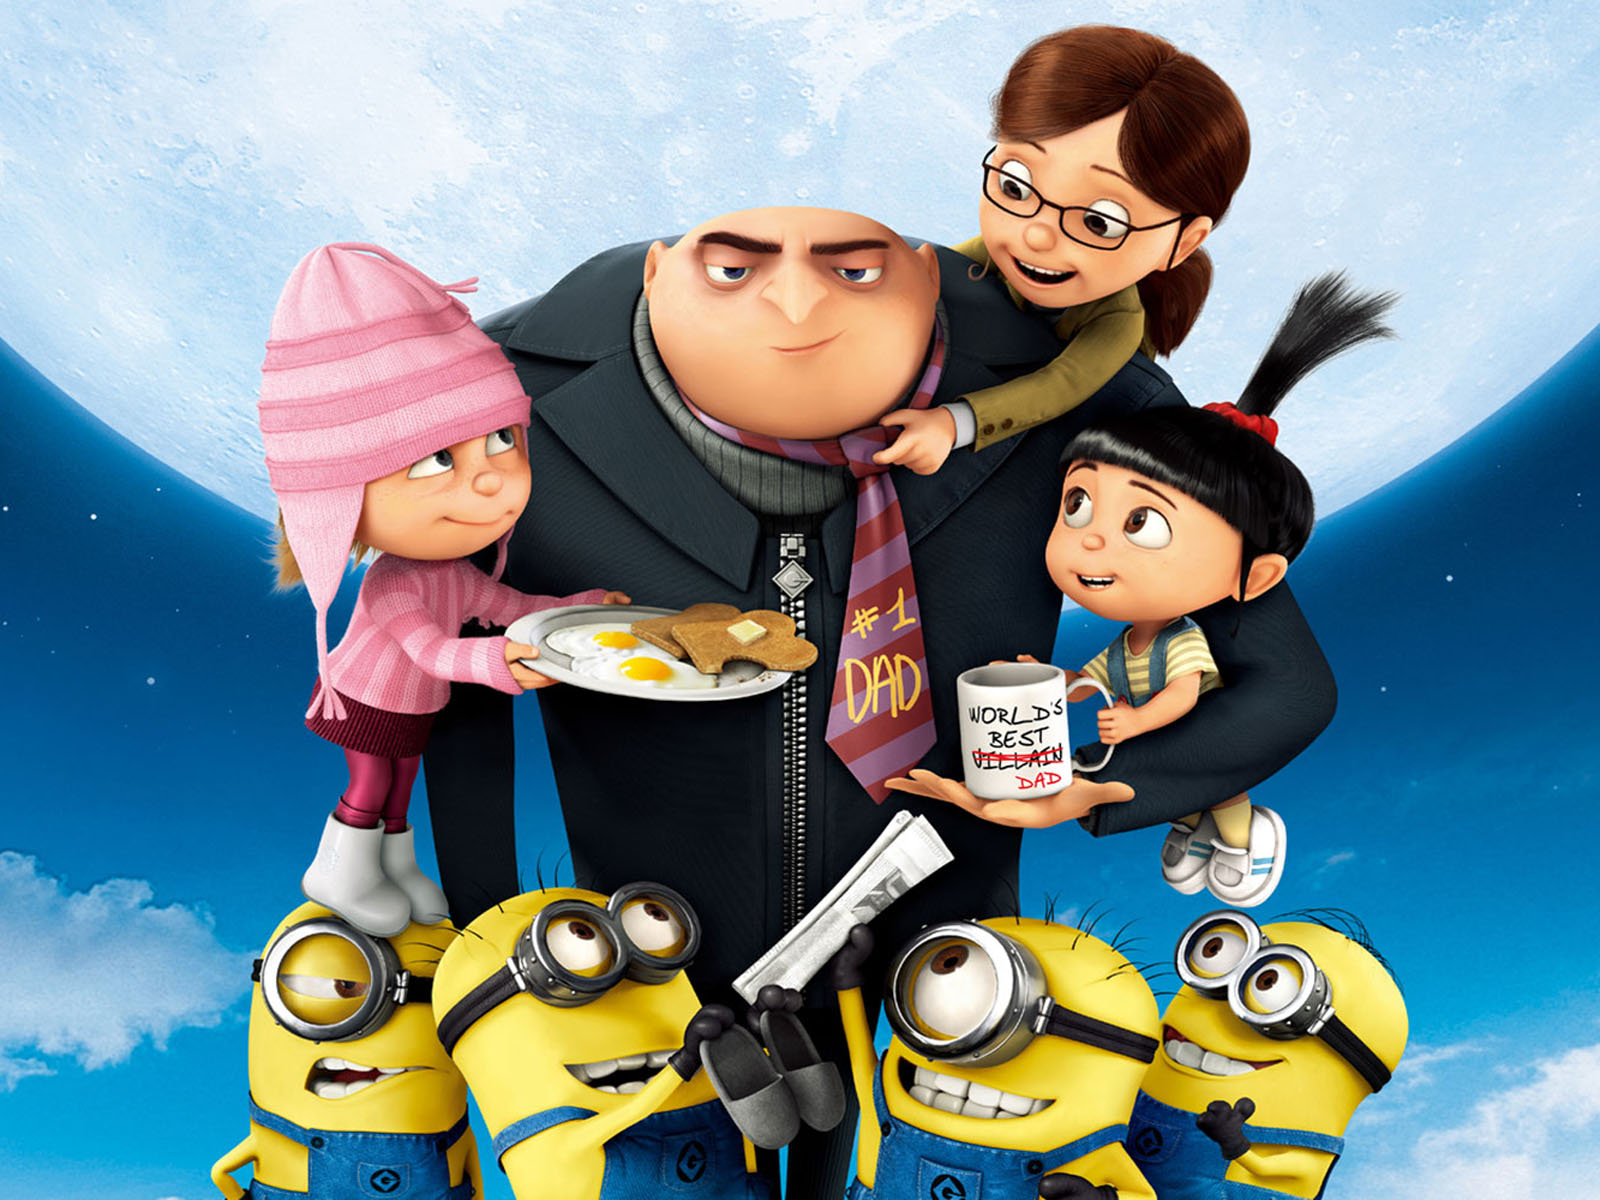 Tag despicable me cartoons wallpapers images photos and pictures